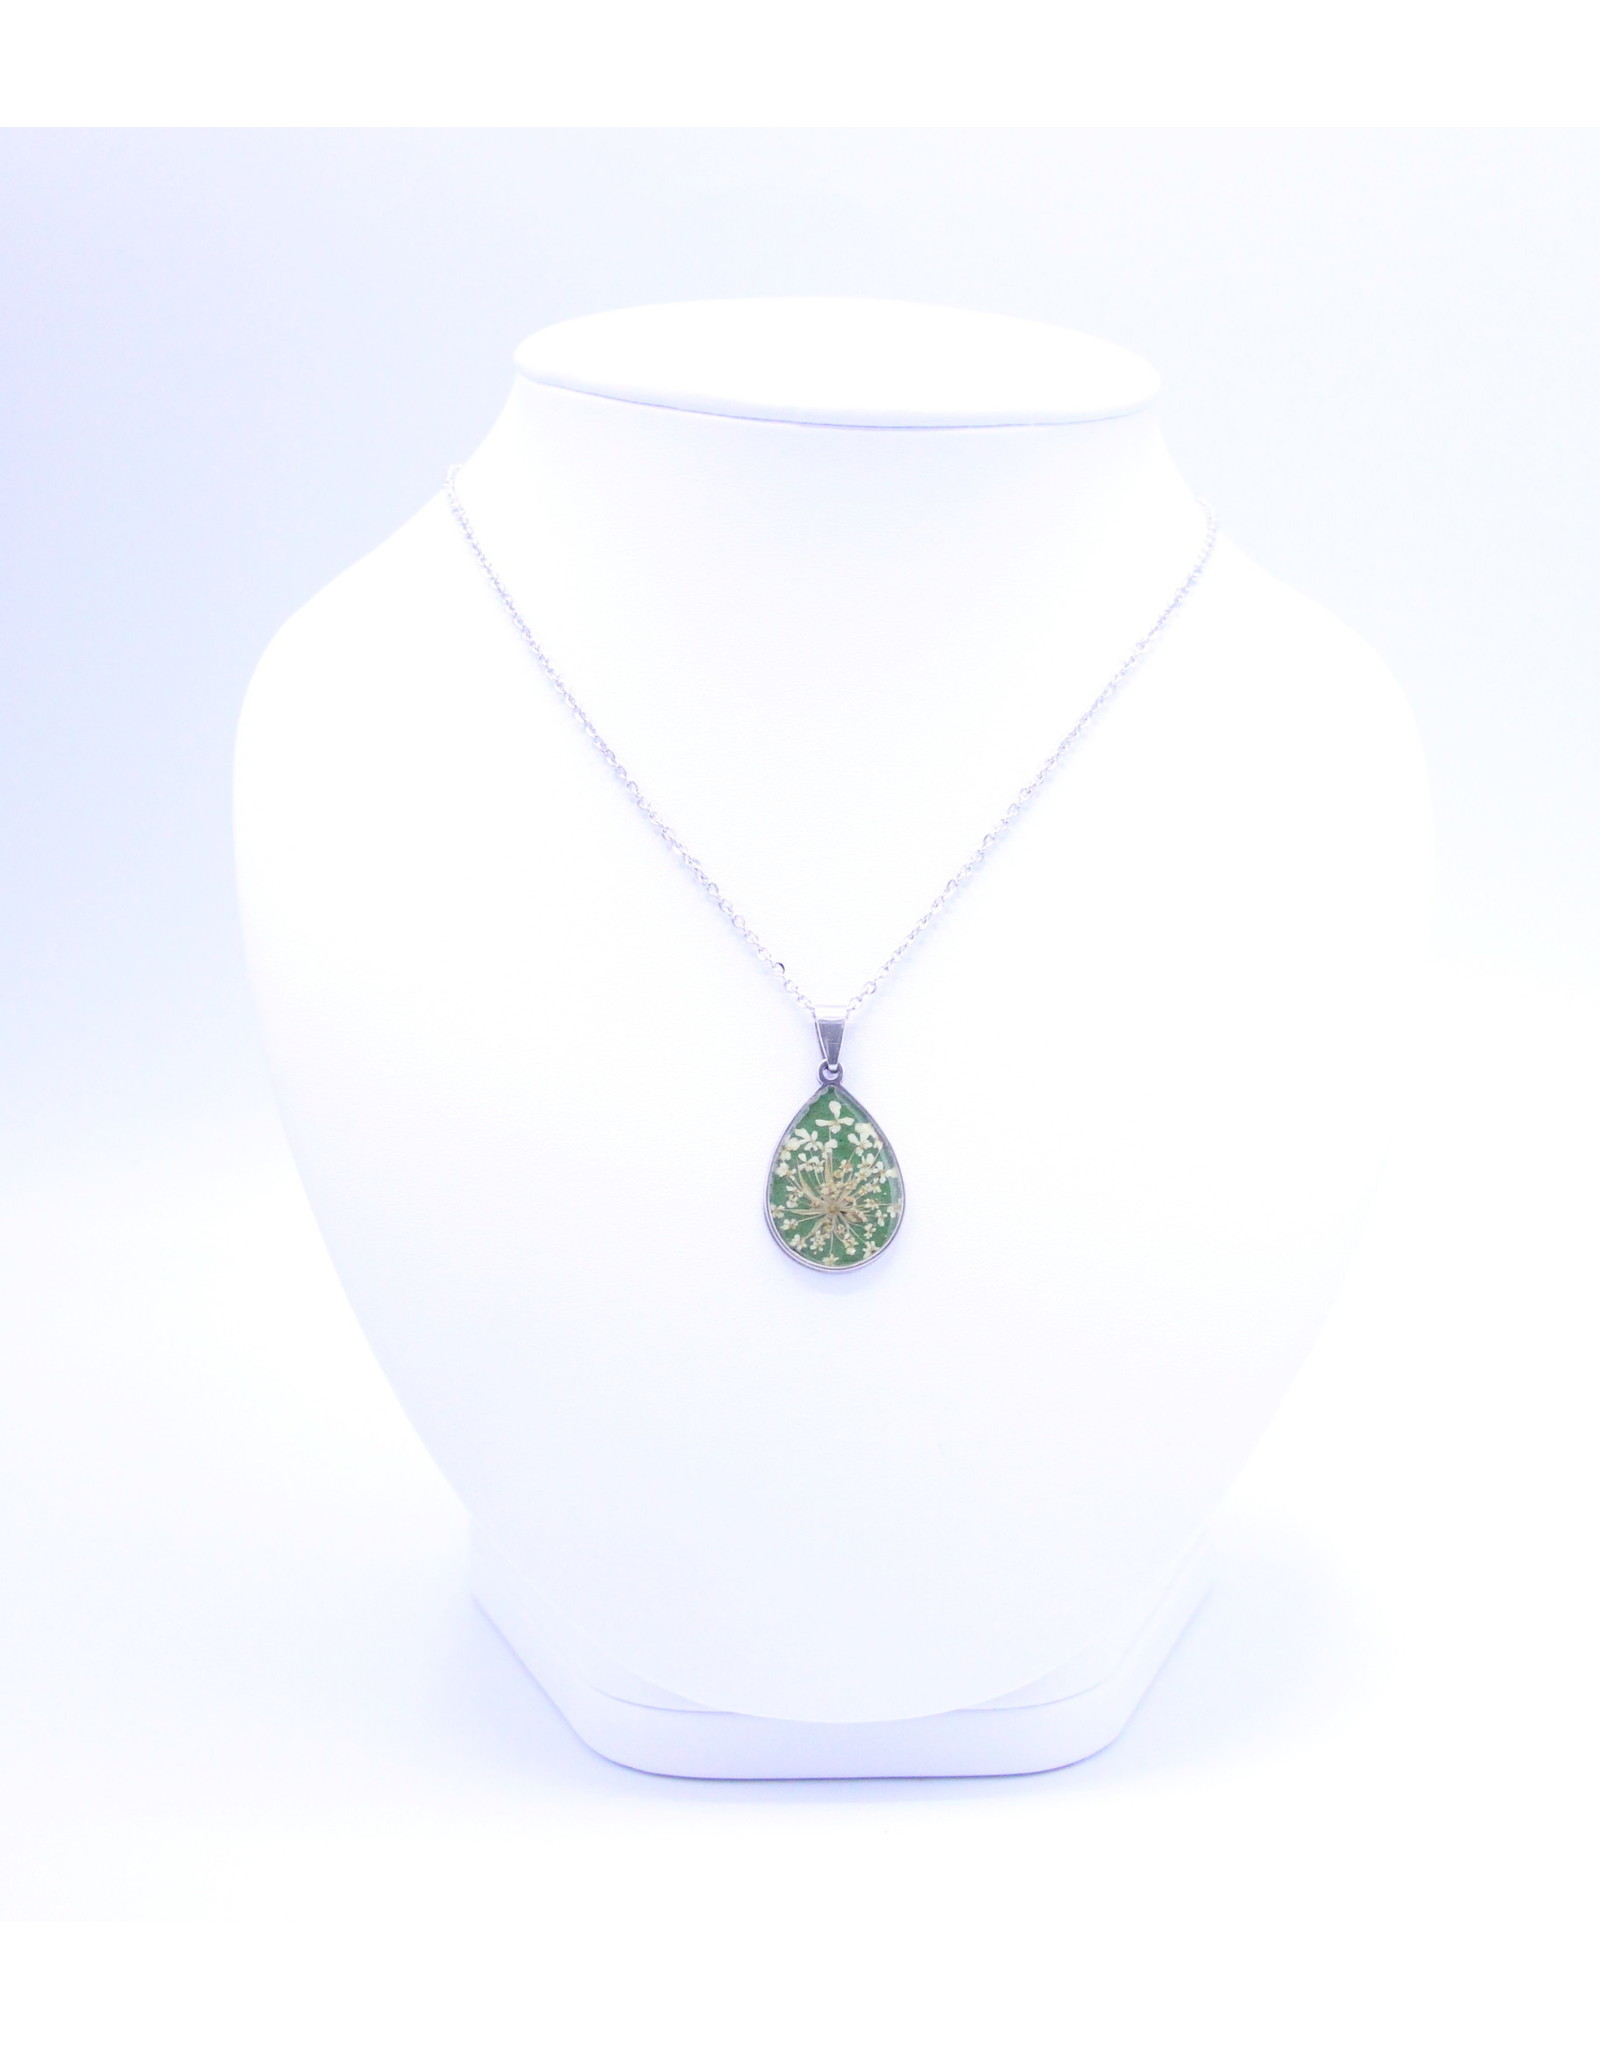 25mm Queen Anne's Lace Necklace Green - N25QAG1